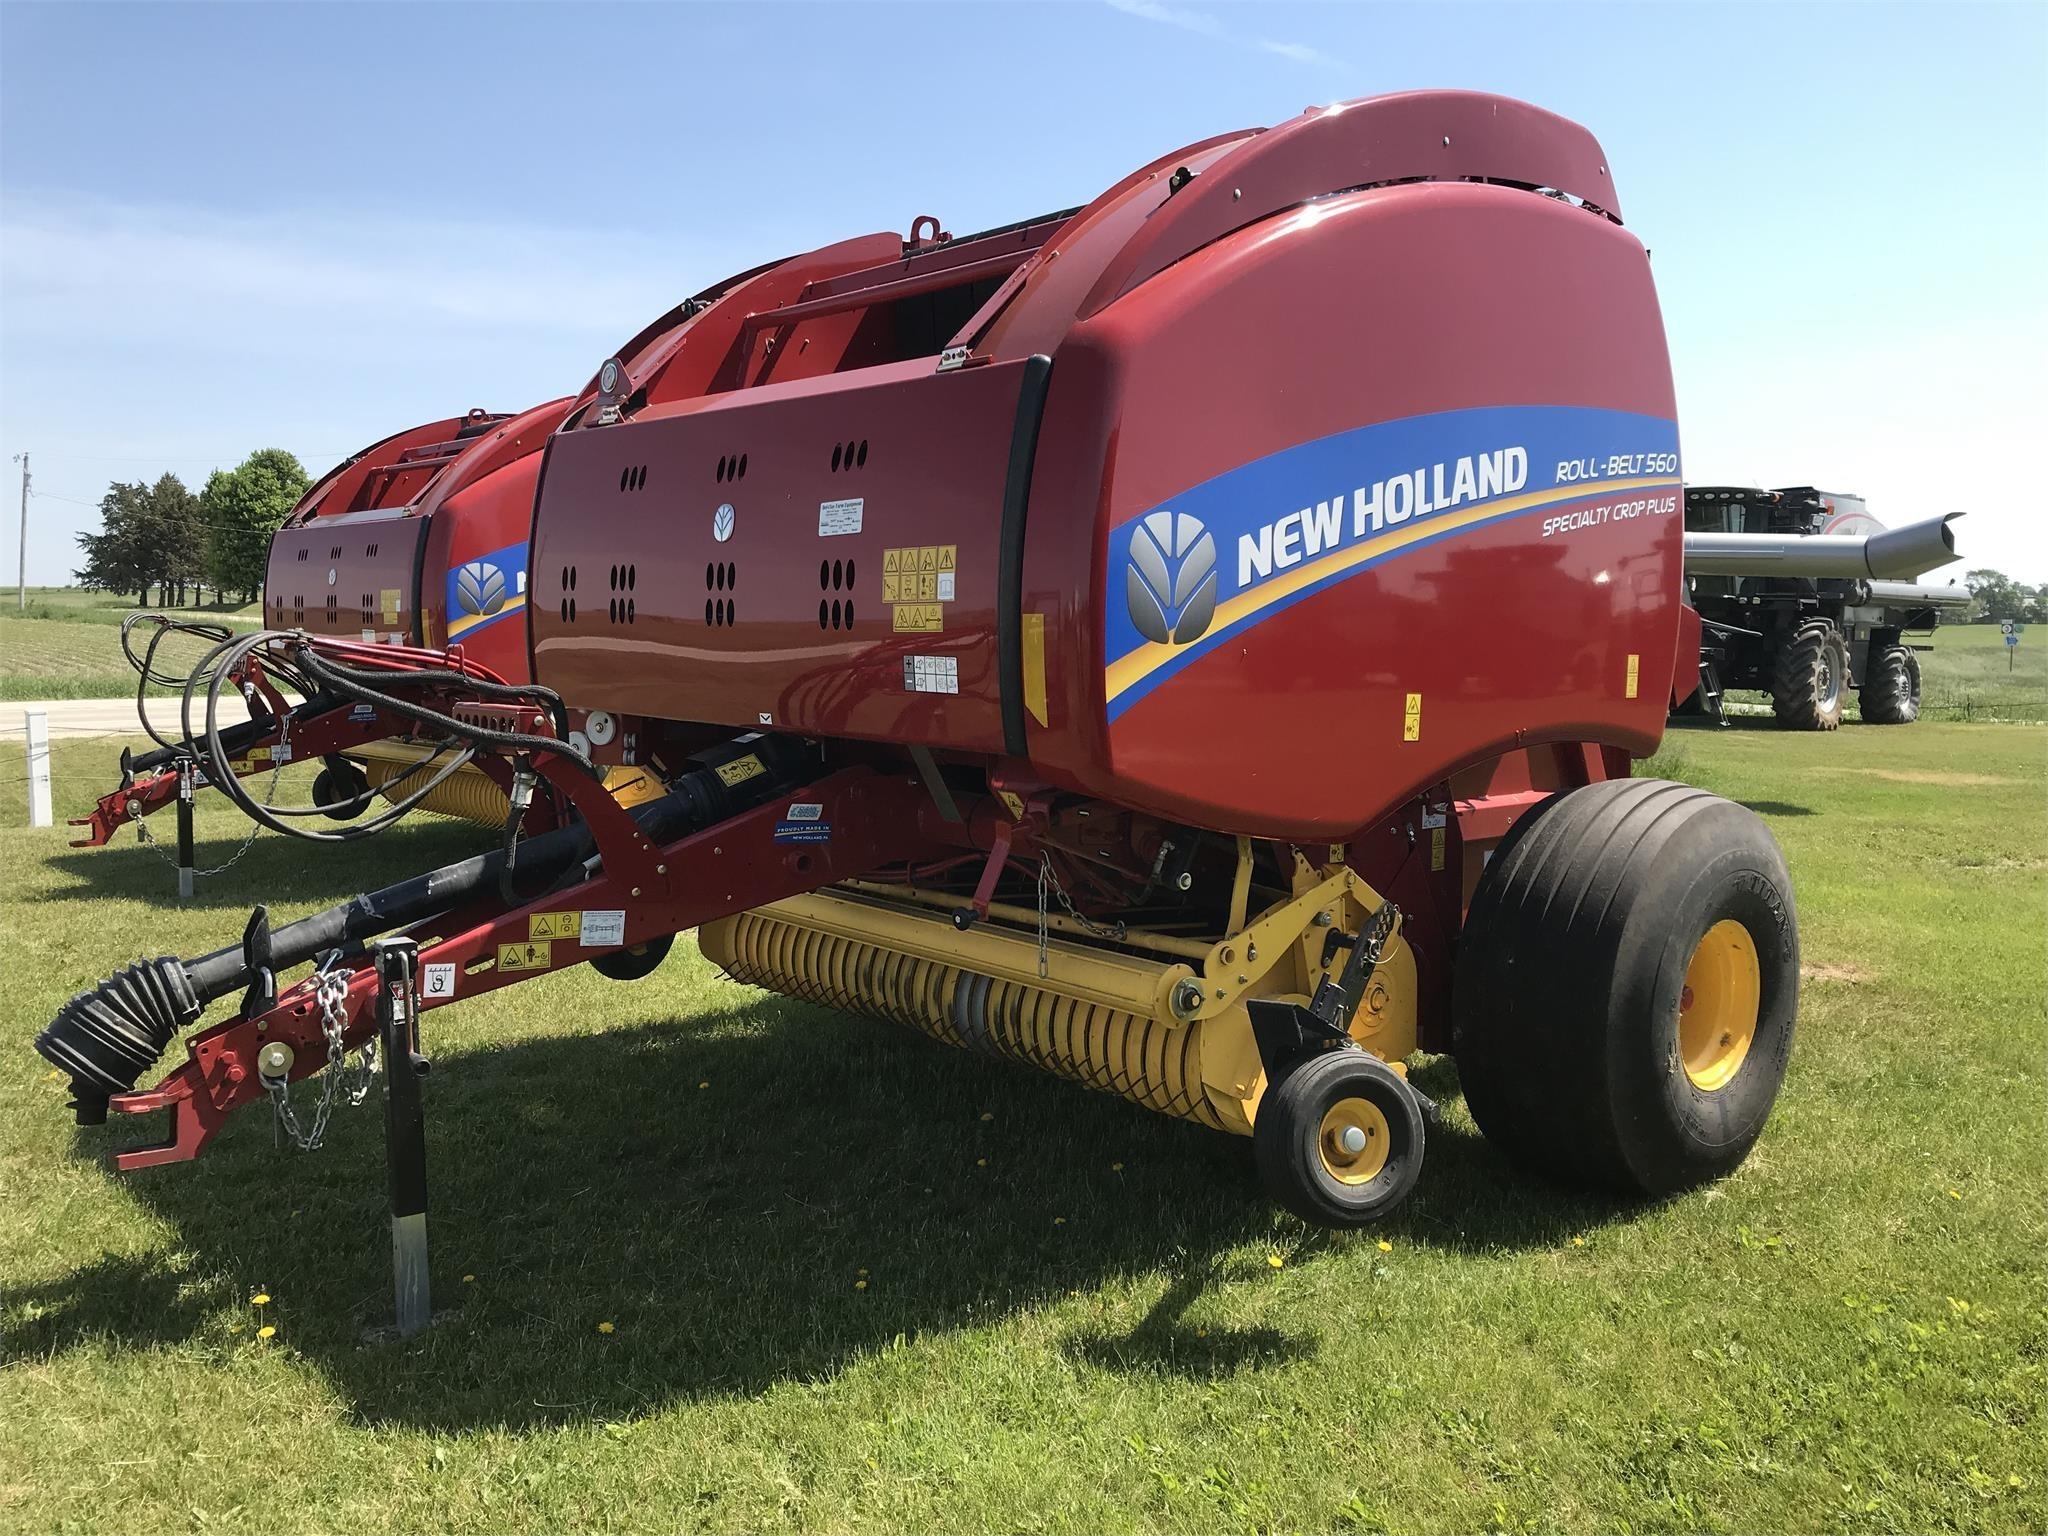 Used, 2020, NEW HOLLAND, ROLL-BELT 560, Hay and Forage Equipment - Round Balers